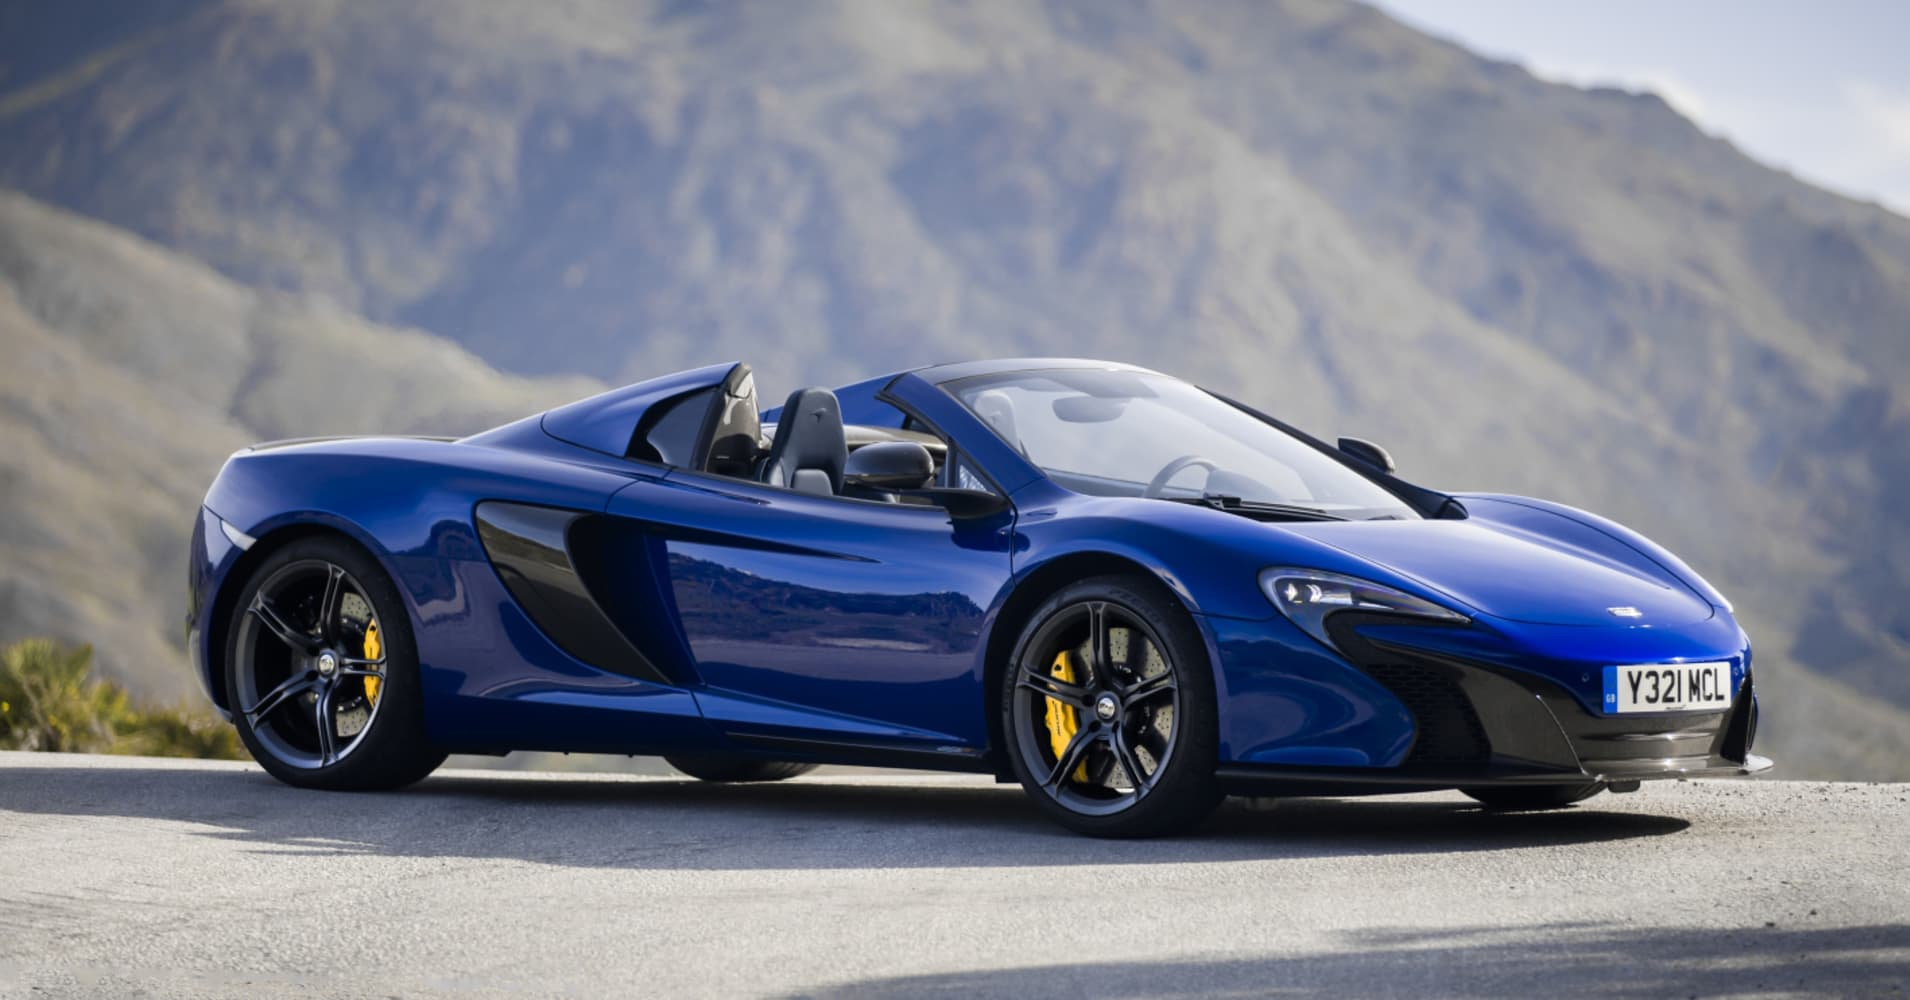 Mclaren Delivers Record Number Of Supercars